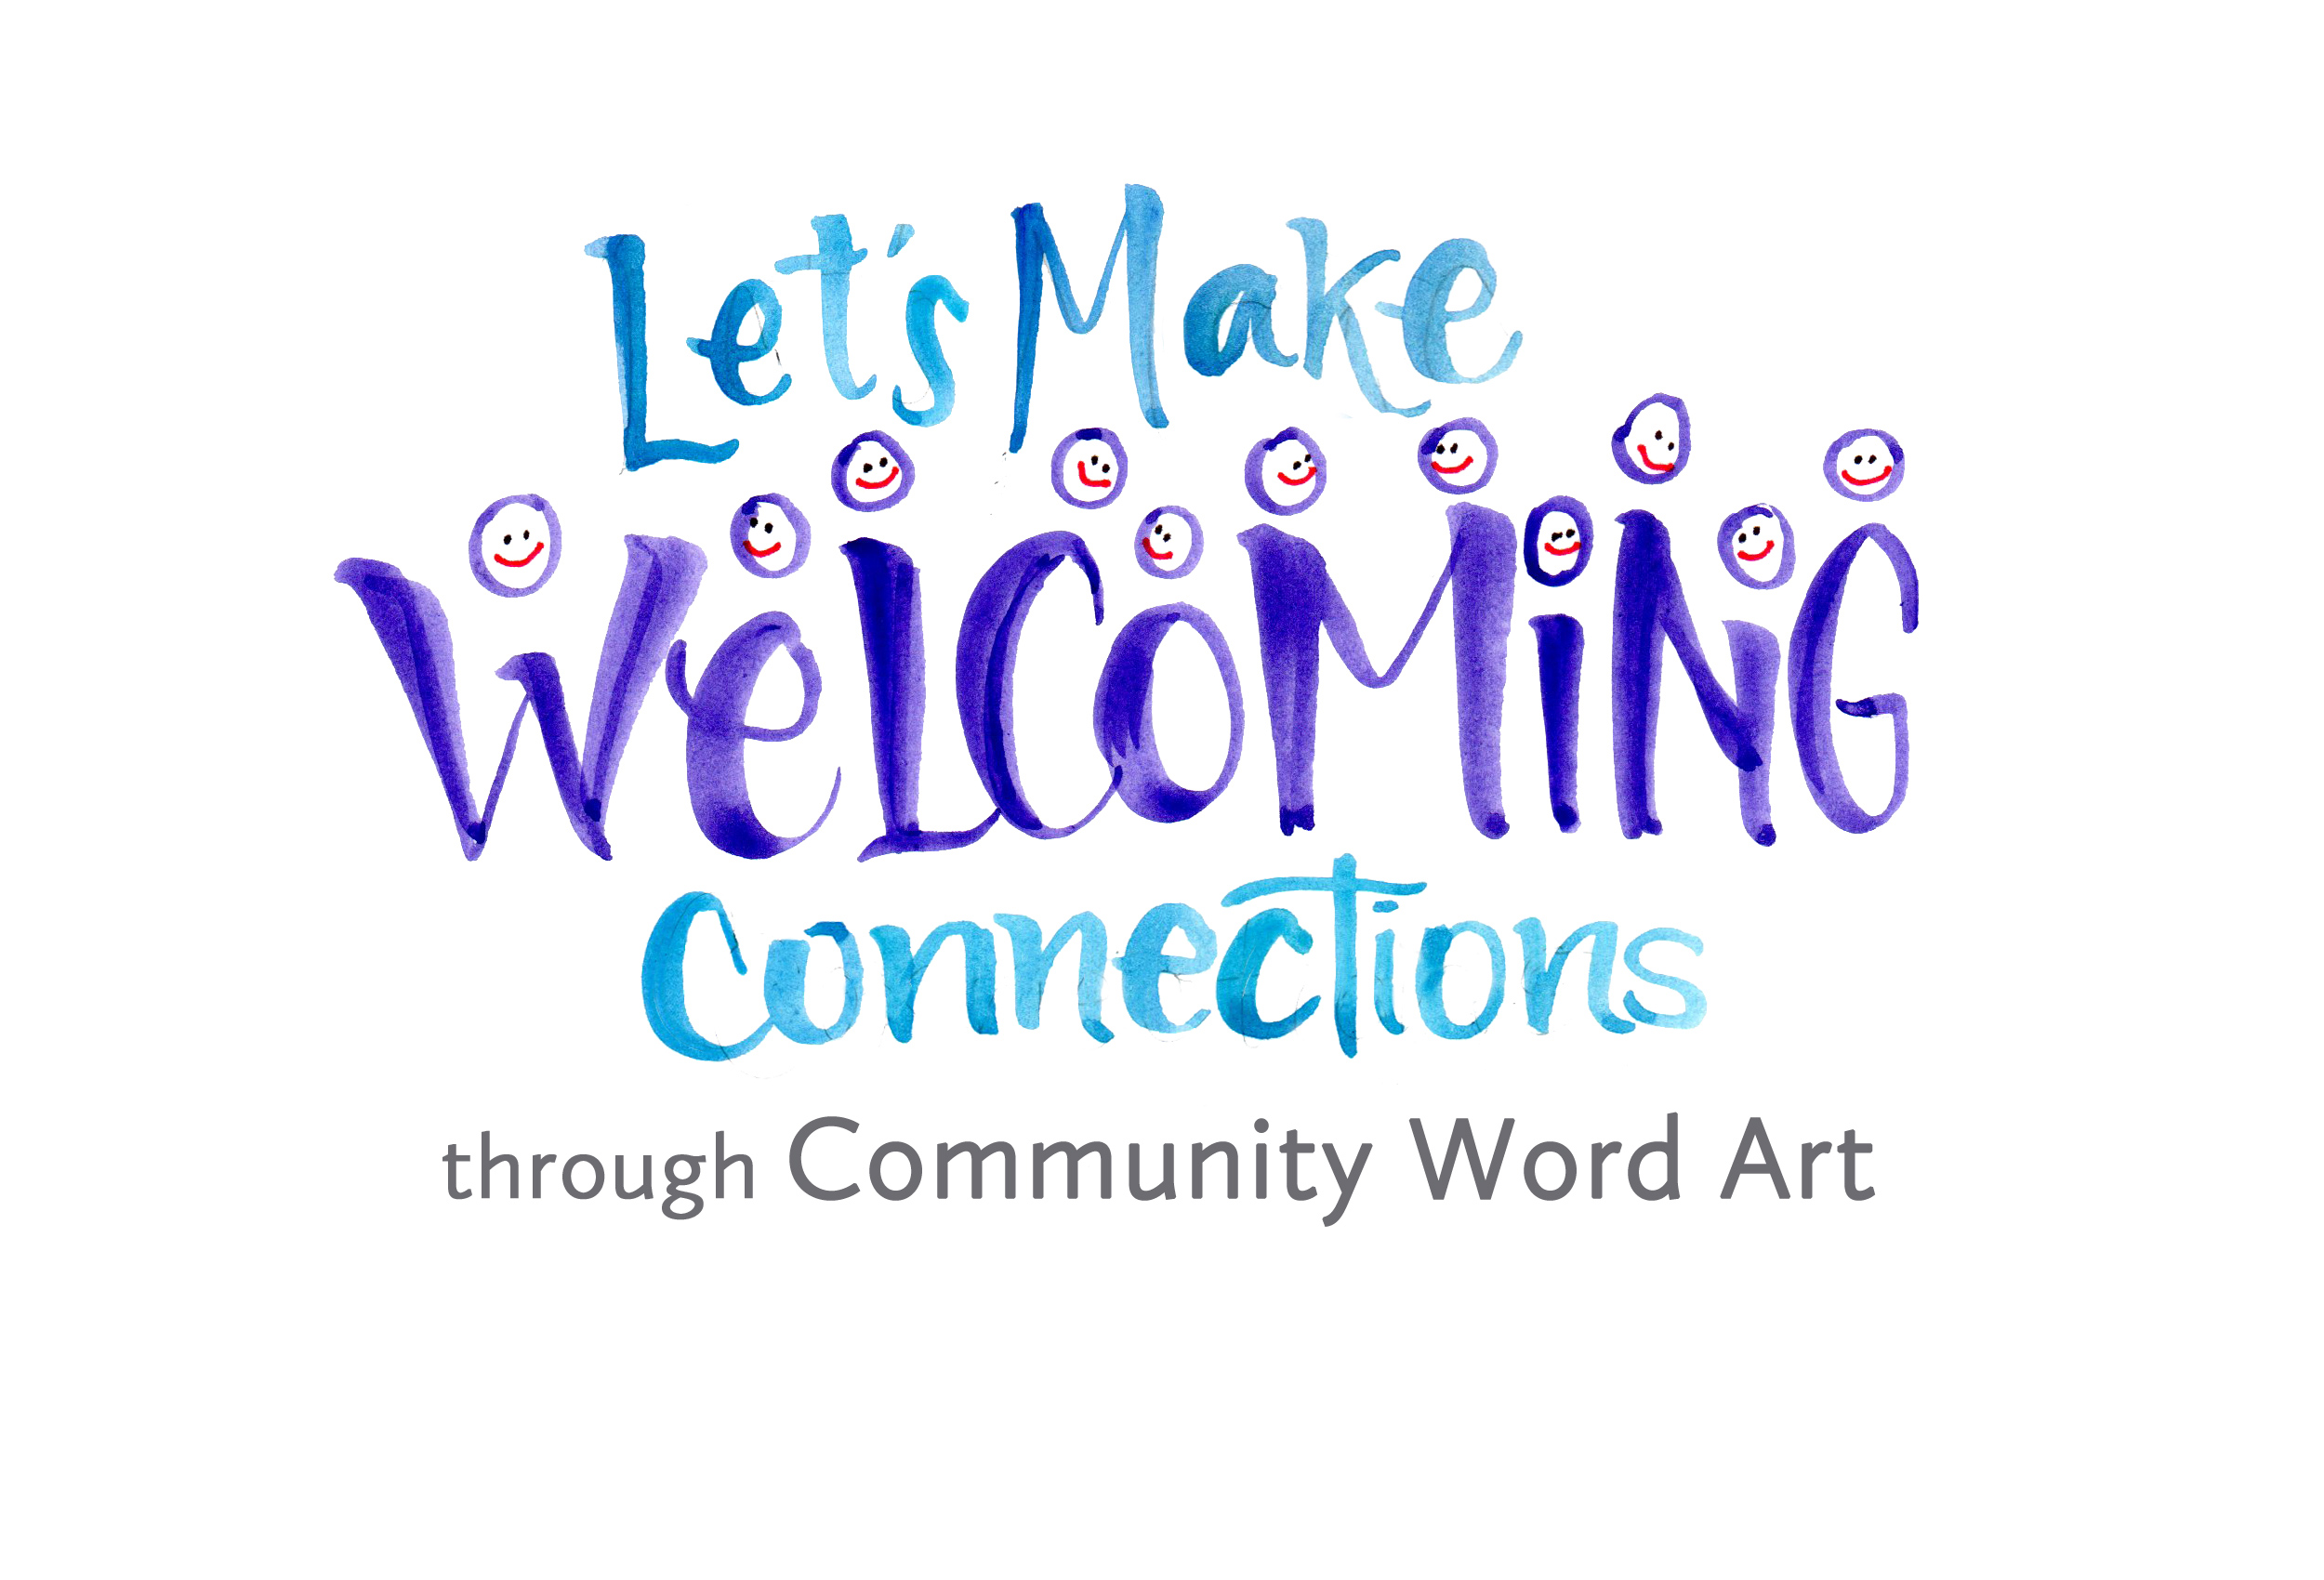 welcoming-connections-community-word-art.jpg